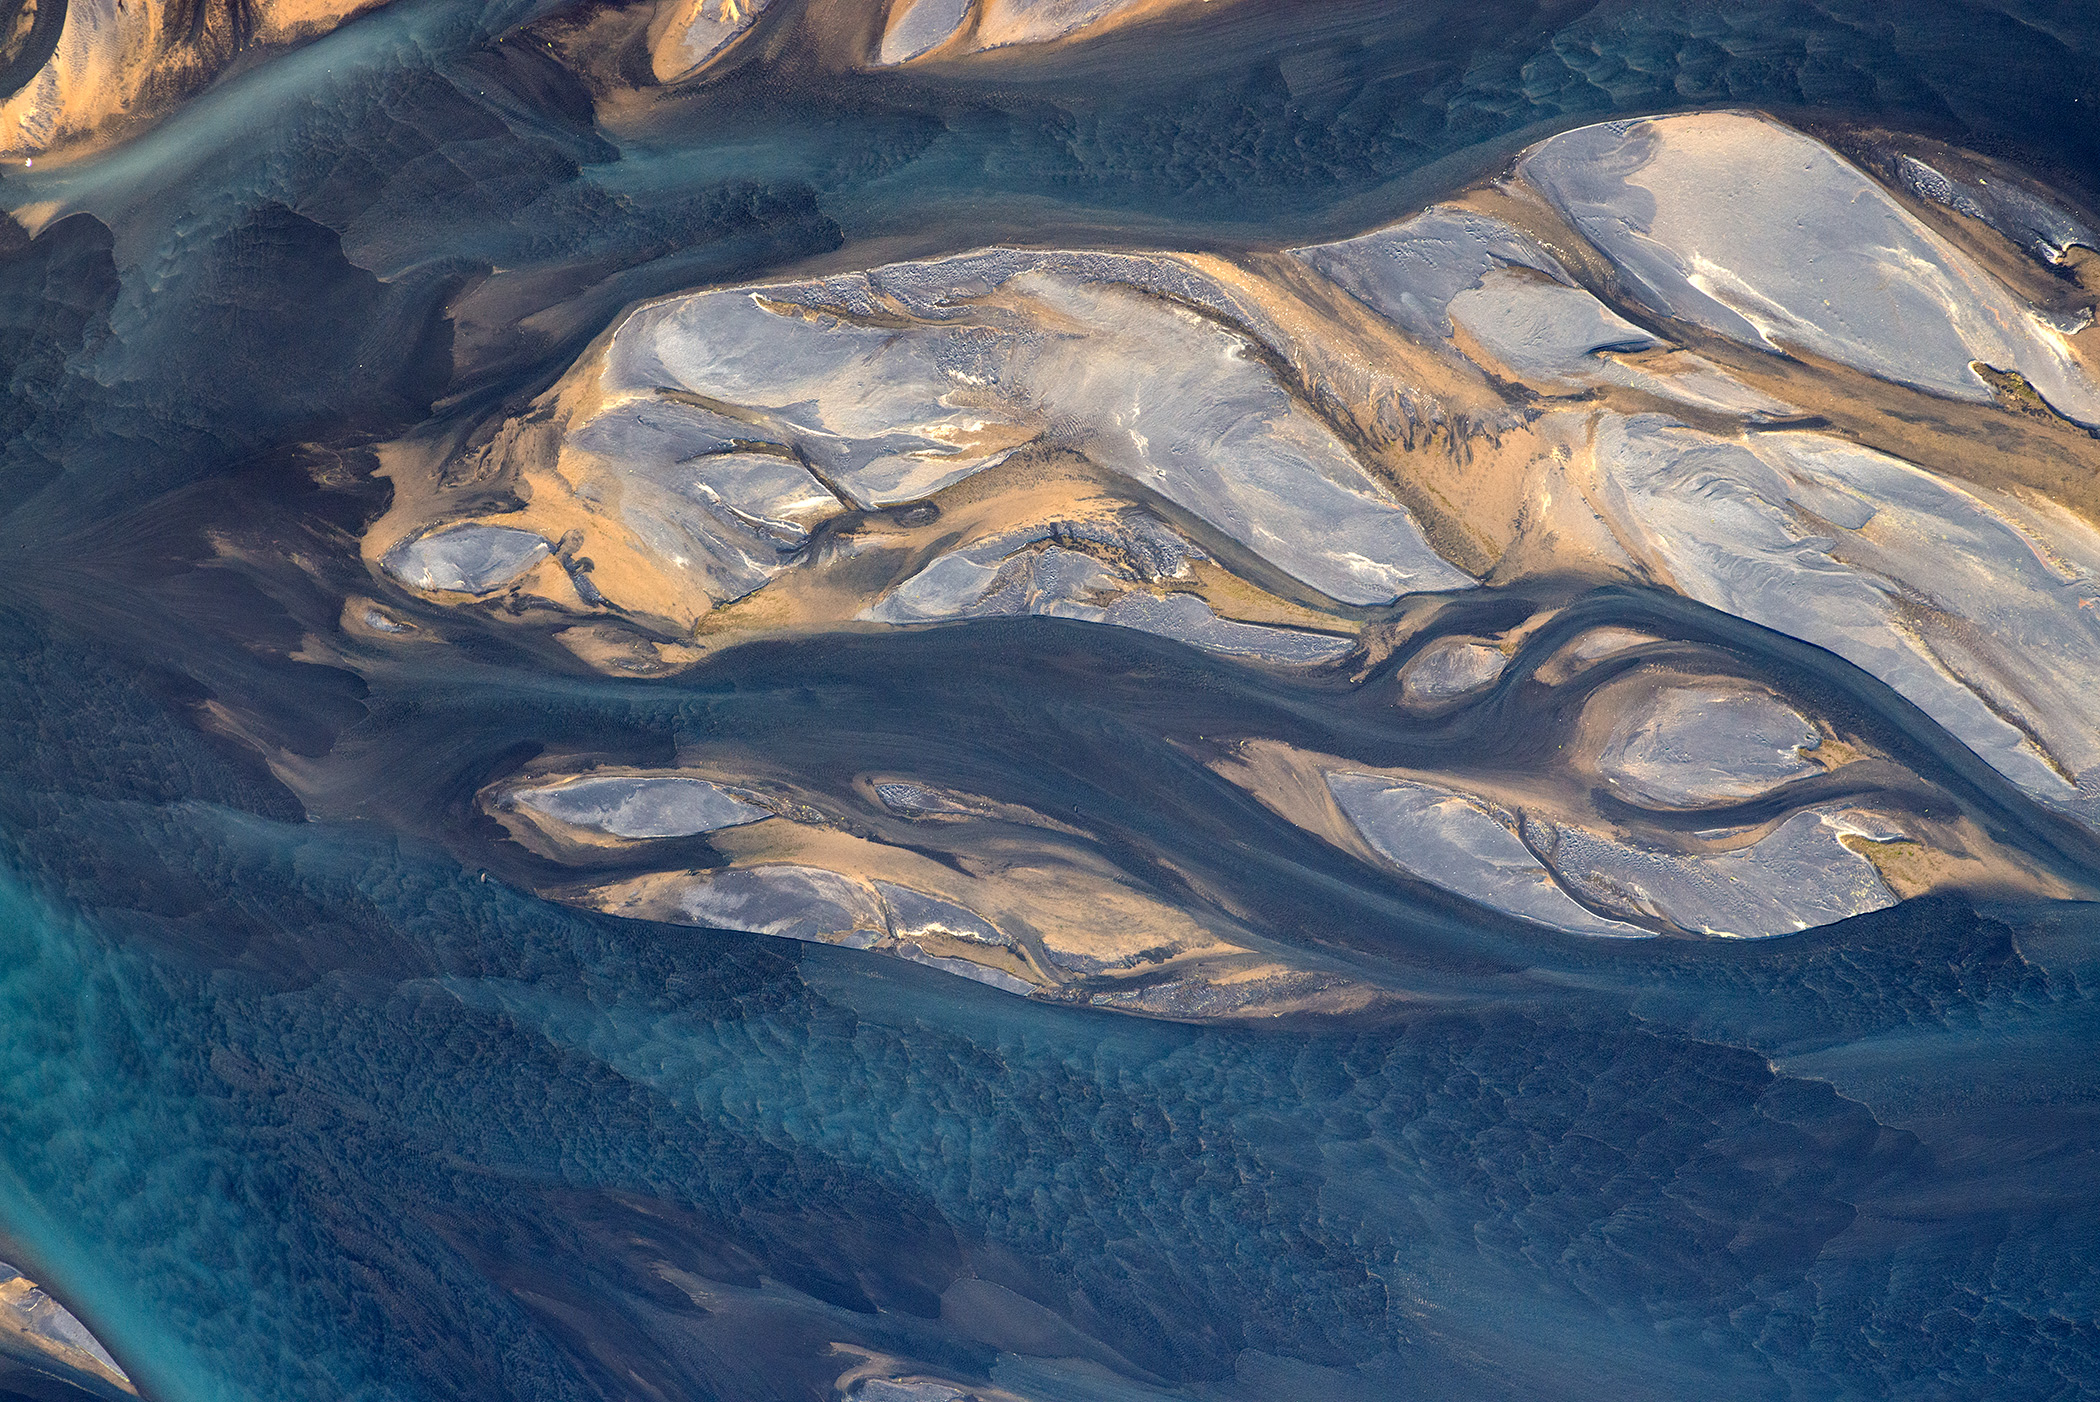 Aerial Photos Of Iceland Volcanic Rivers Andre Ermolaev